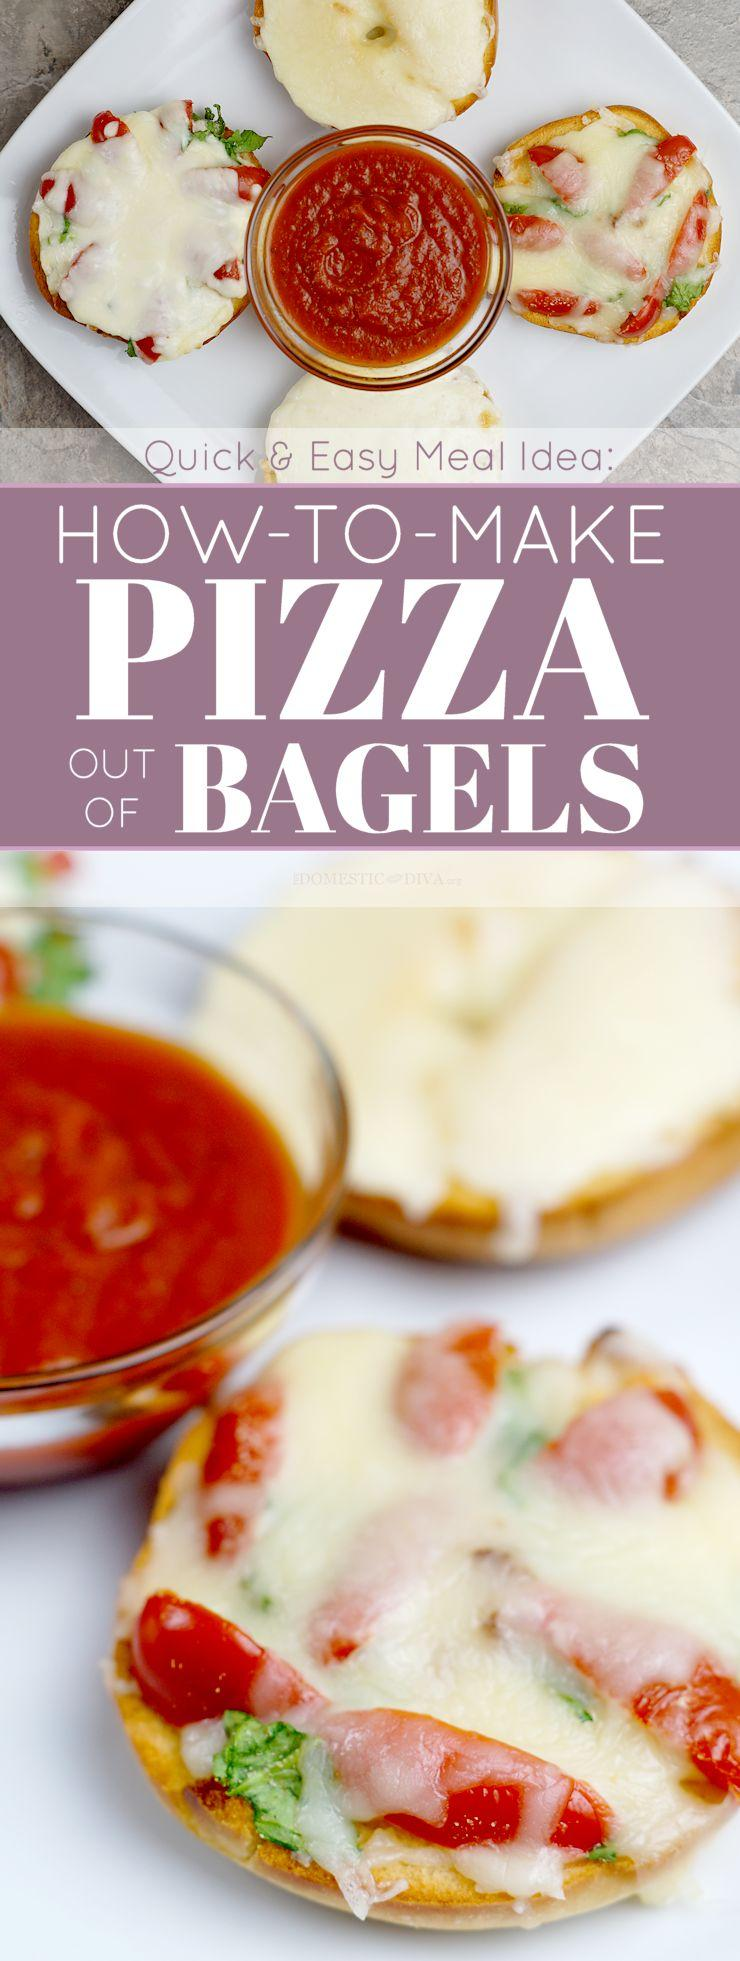 Quick and Easy Meal Idea: How to Make Pizza Out of Bagels (Recipe)